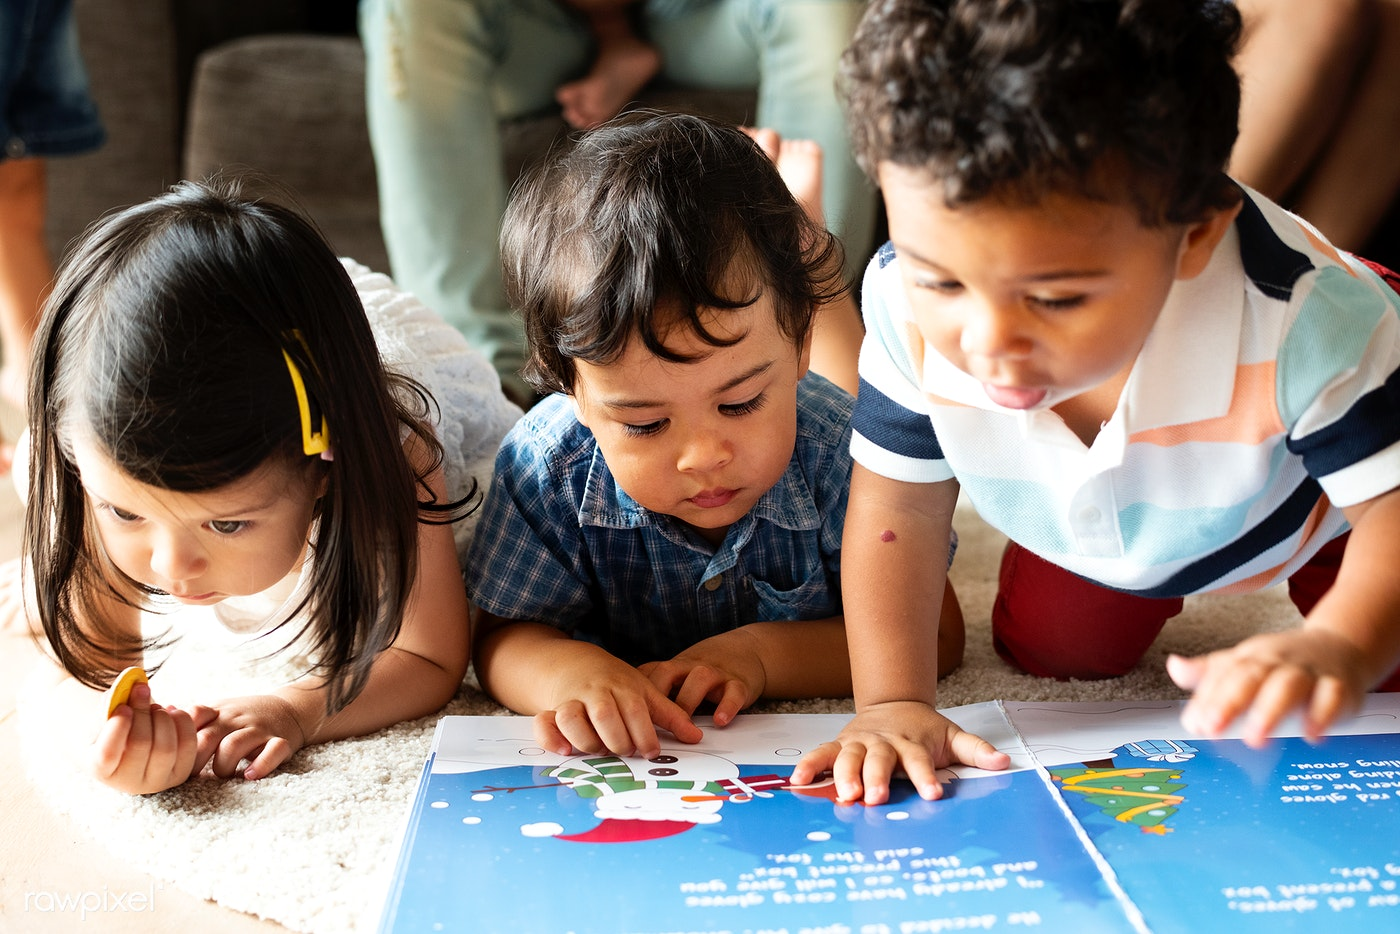 Image by Rawpixel of preschool children looking at a story book.